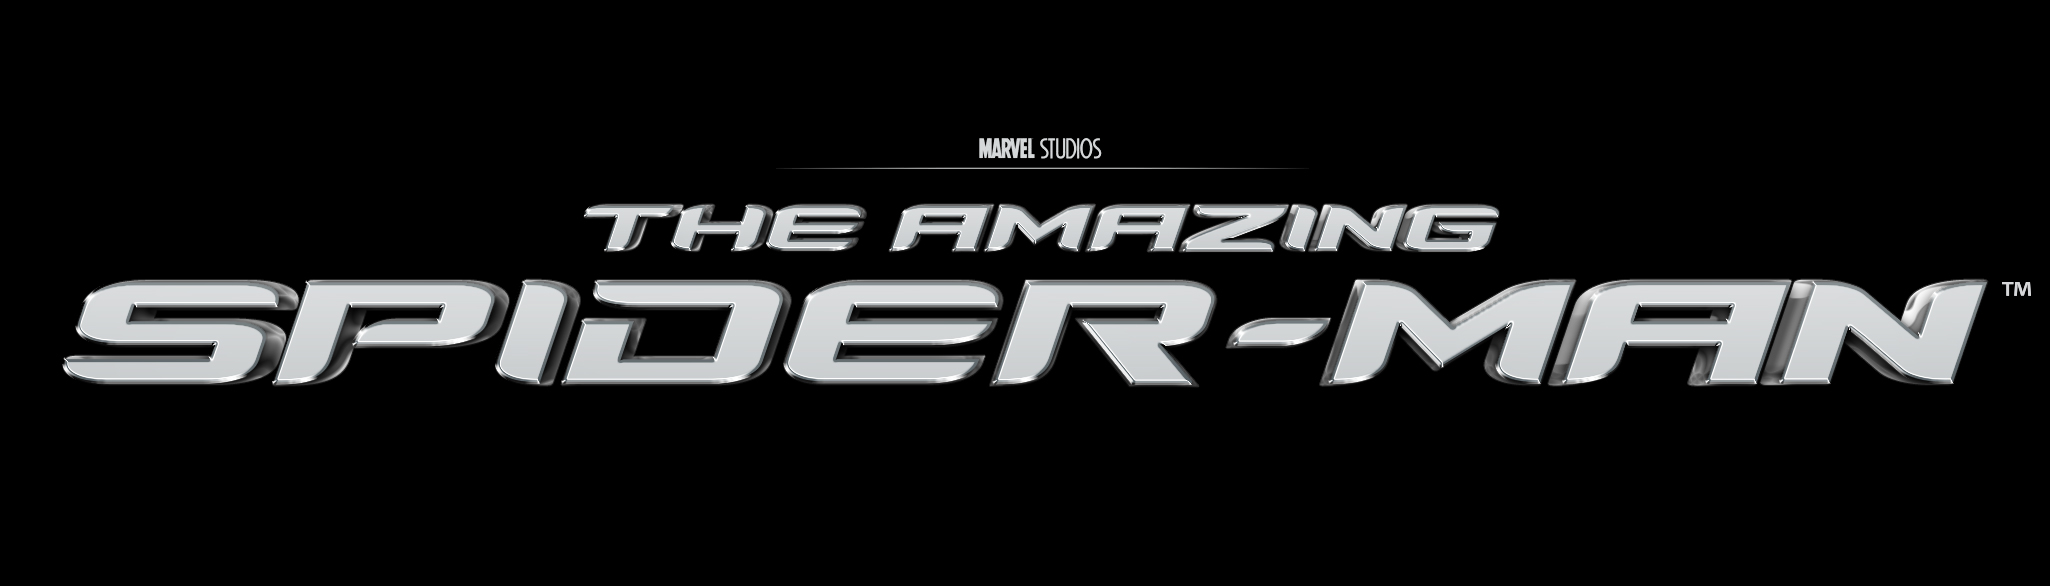 the amazing spiderman title treatment by barney01 on